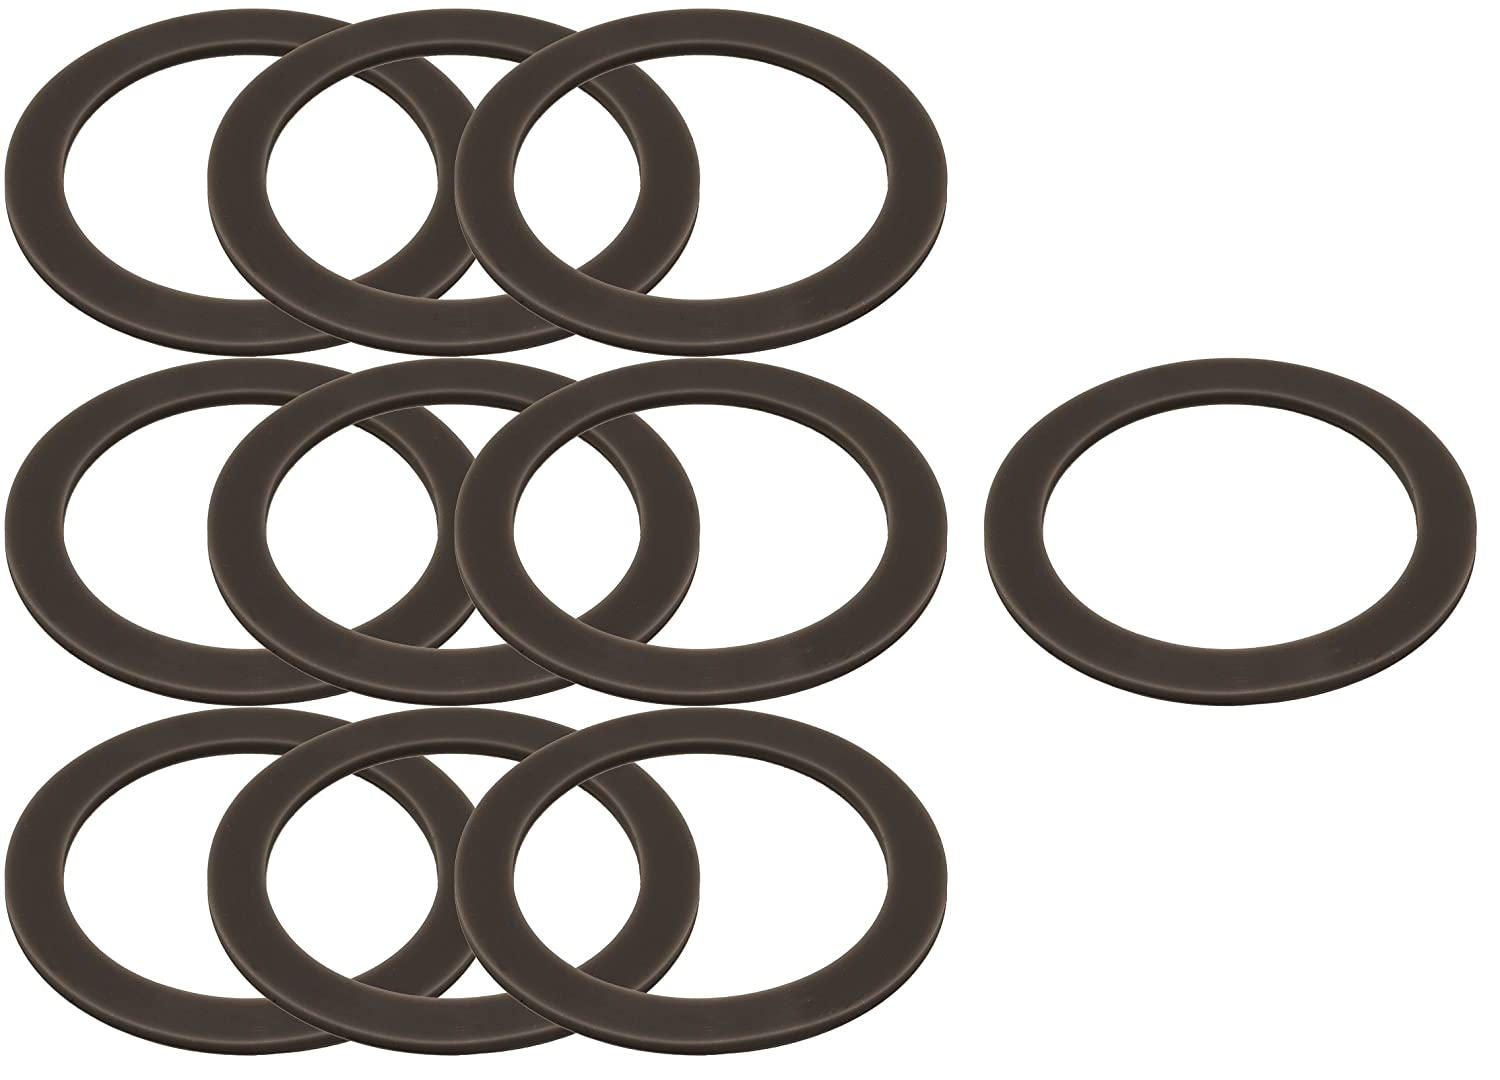 Blendin Blender Gasket Seal Ring, Fits Oster (10 Pack)